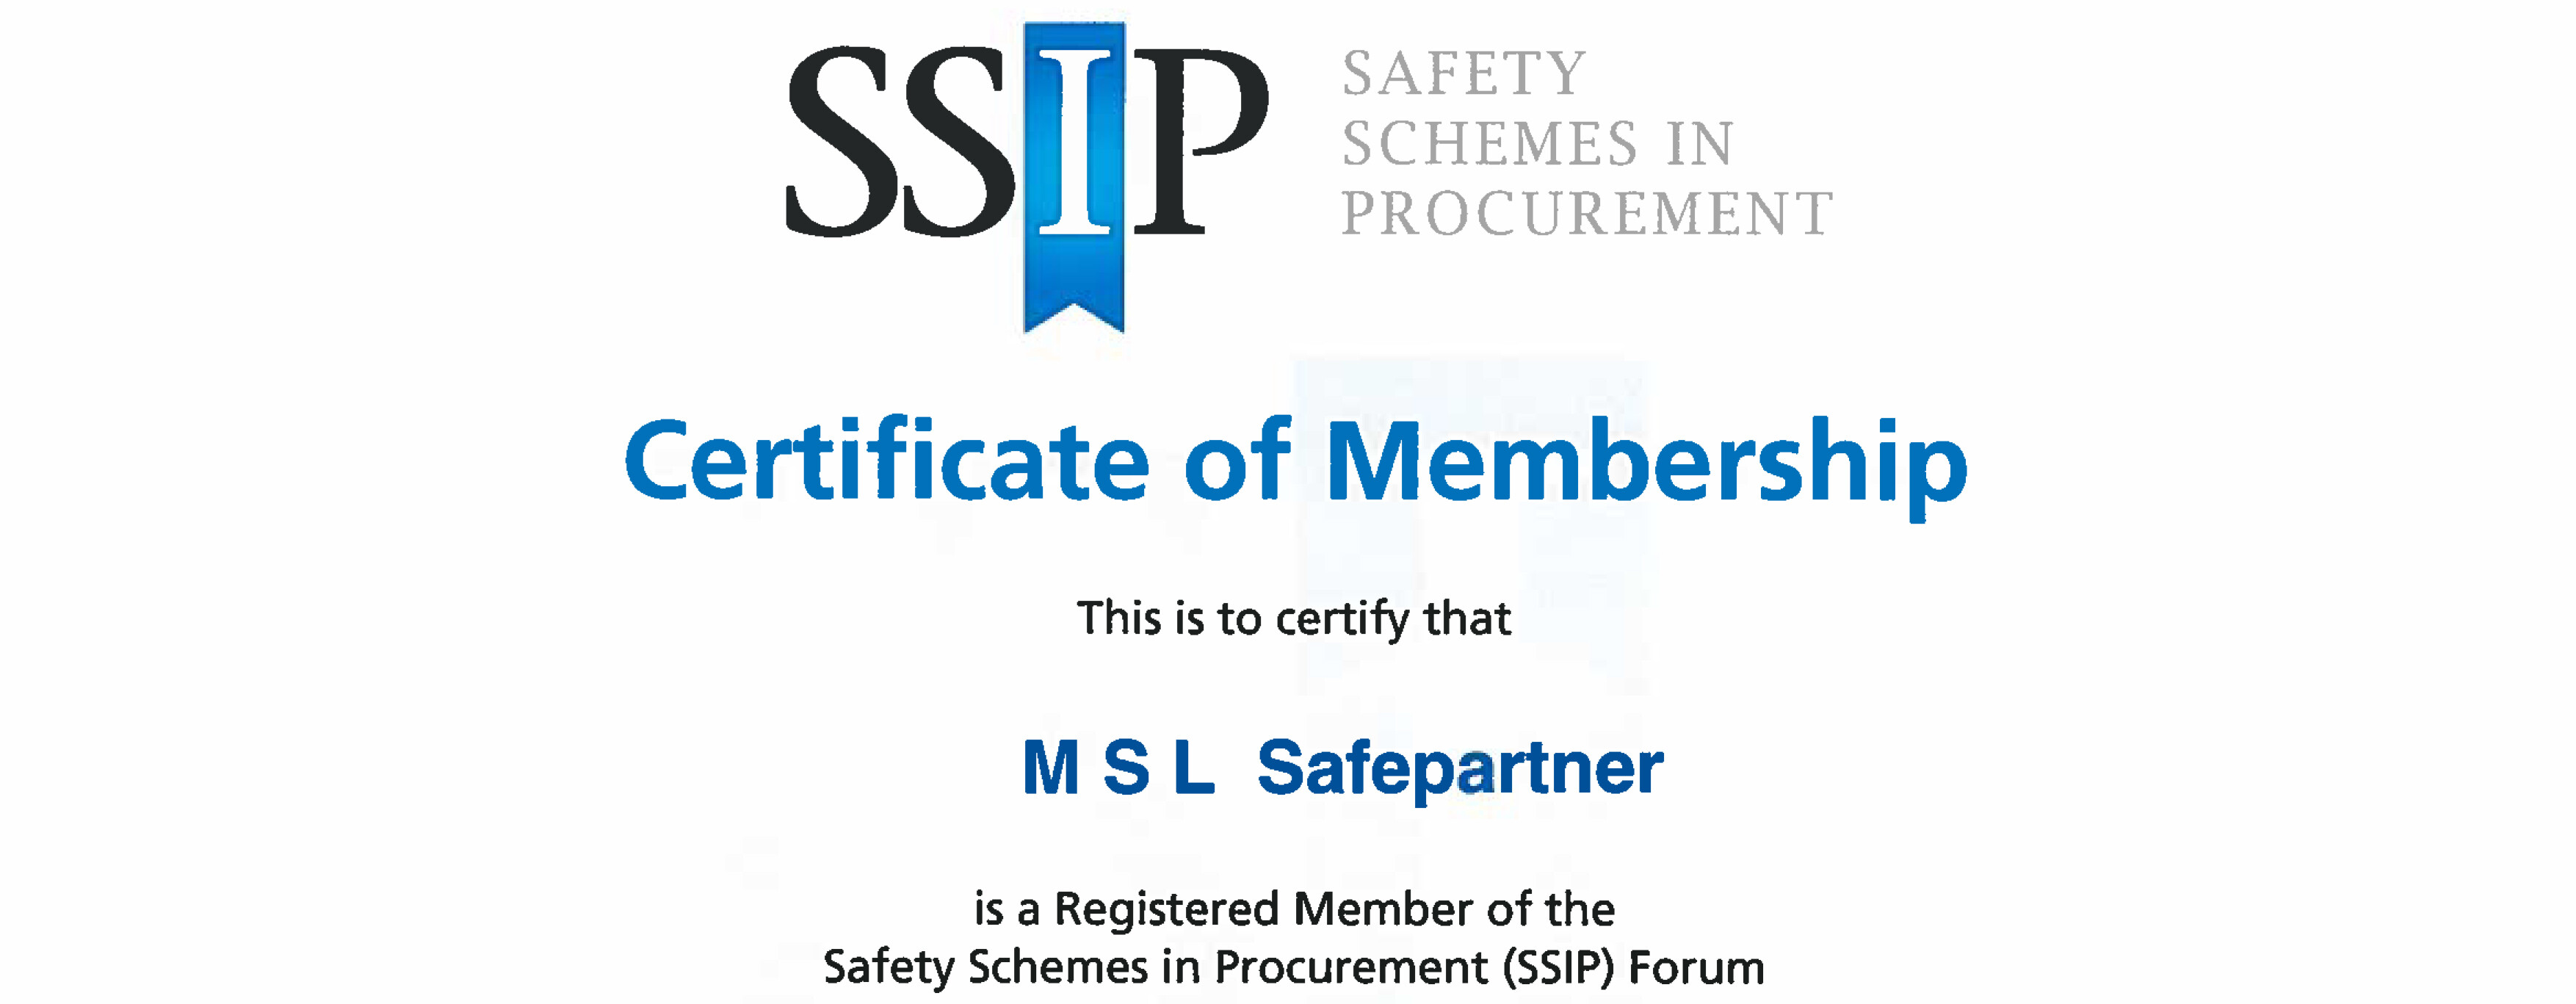 MSL Safepartner Certificate